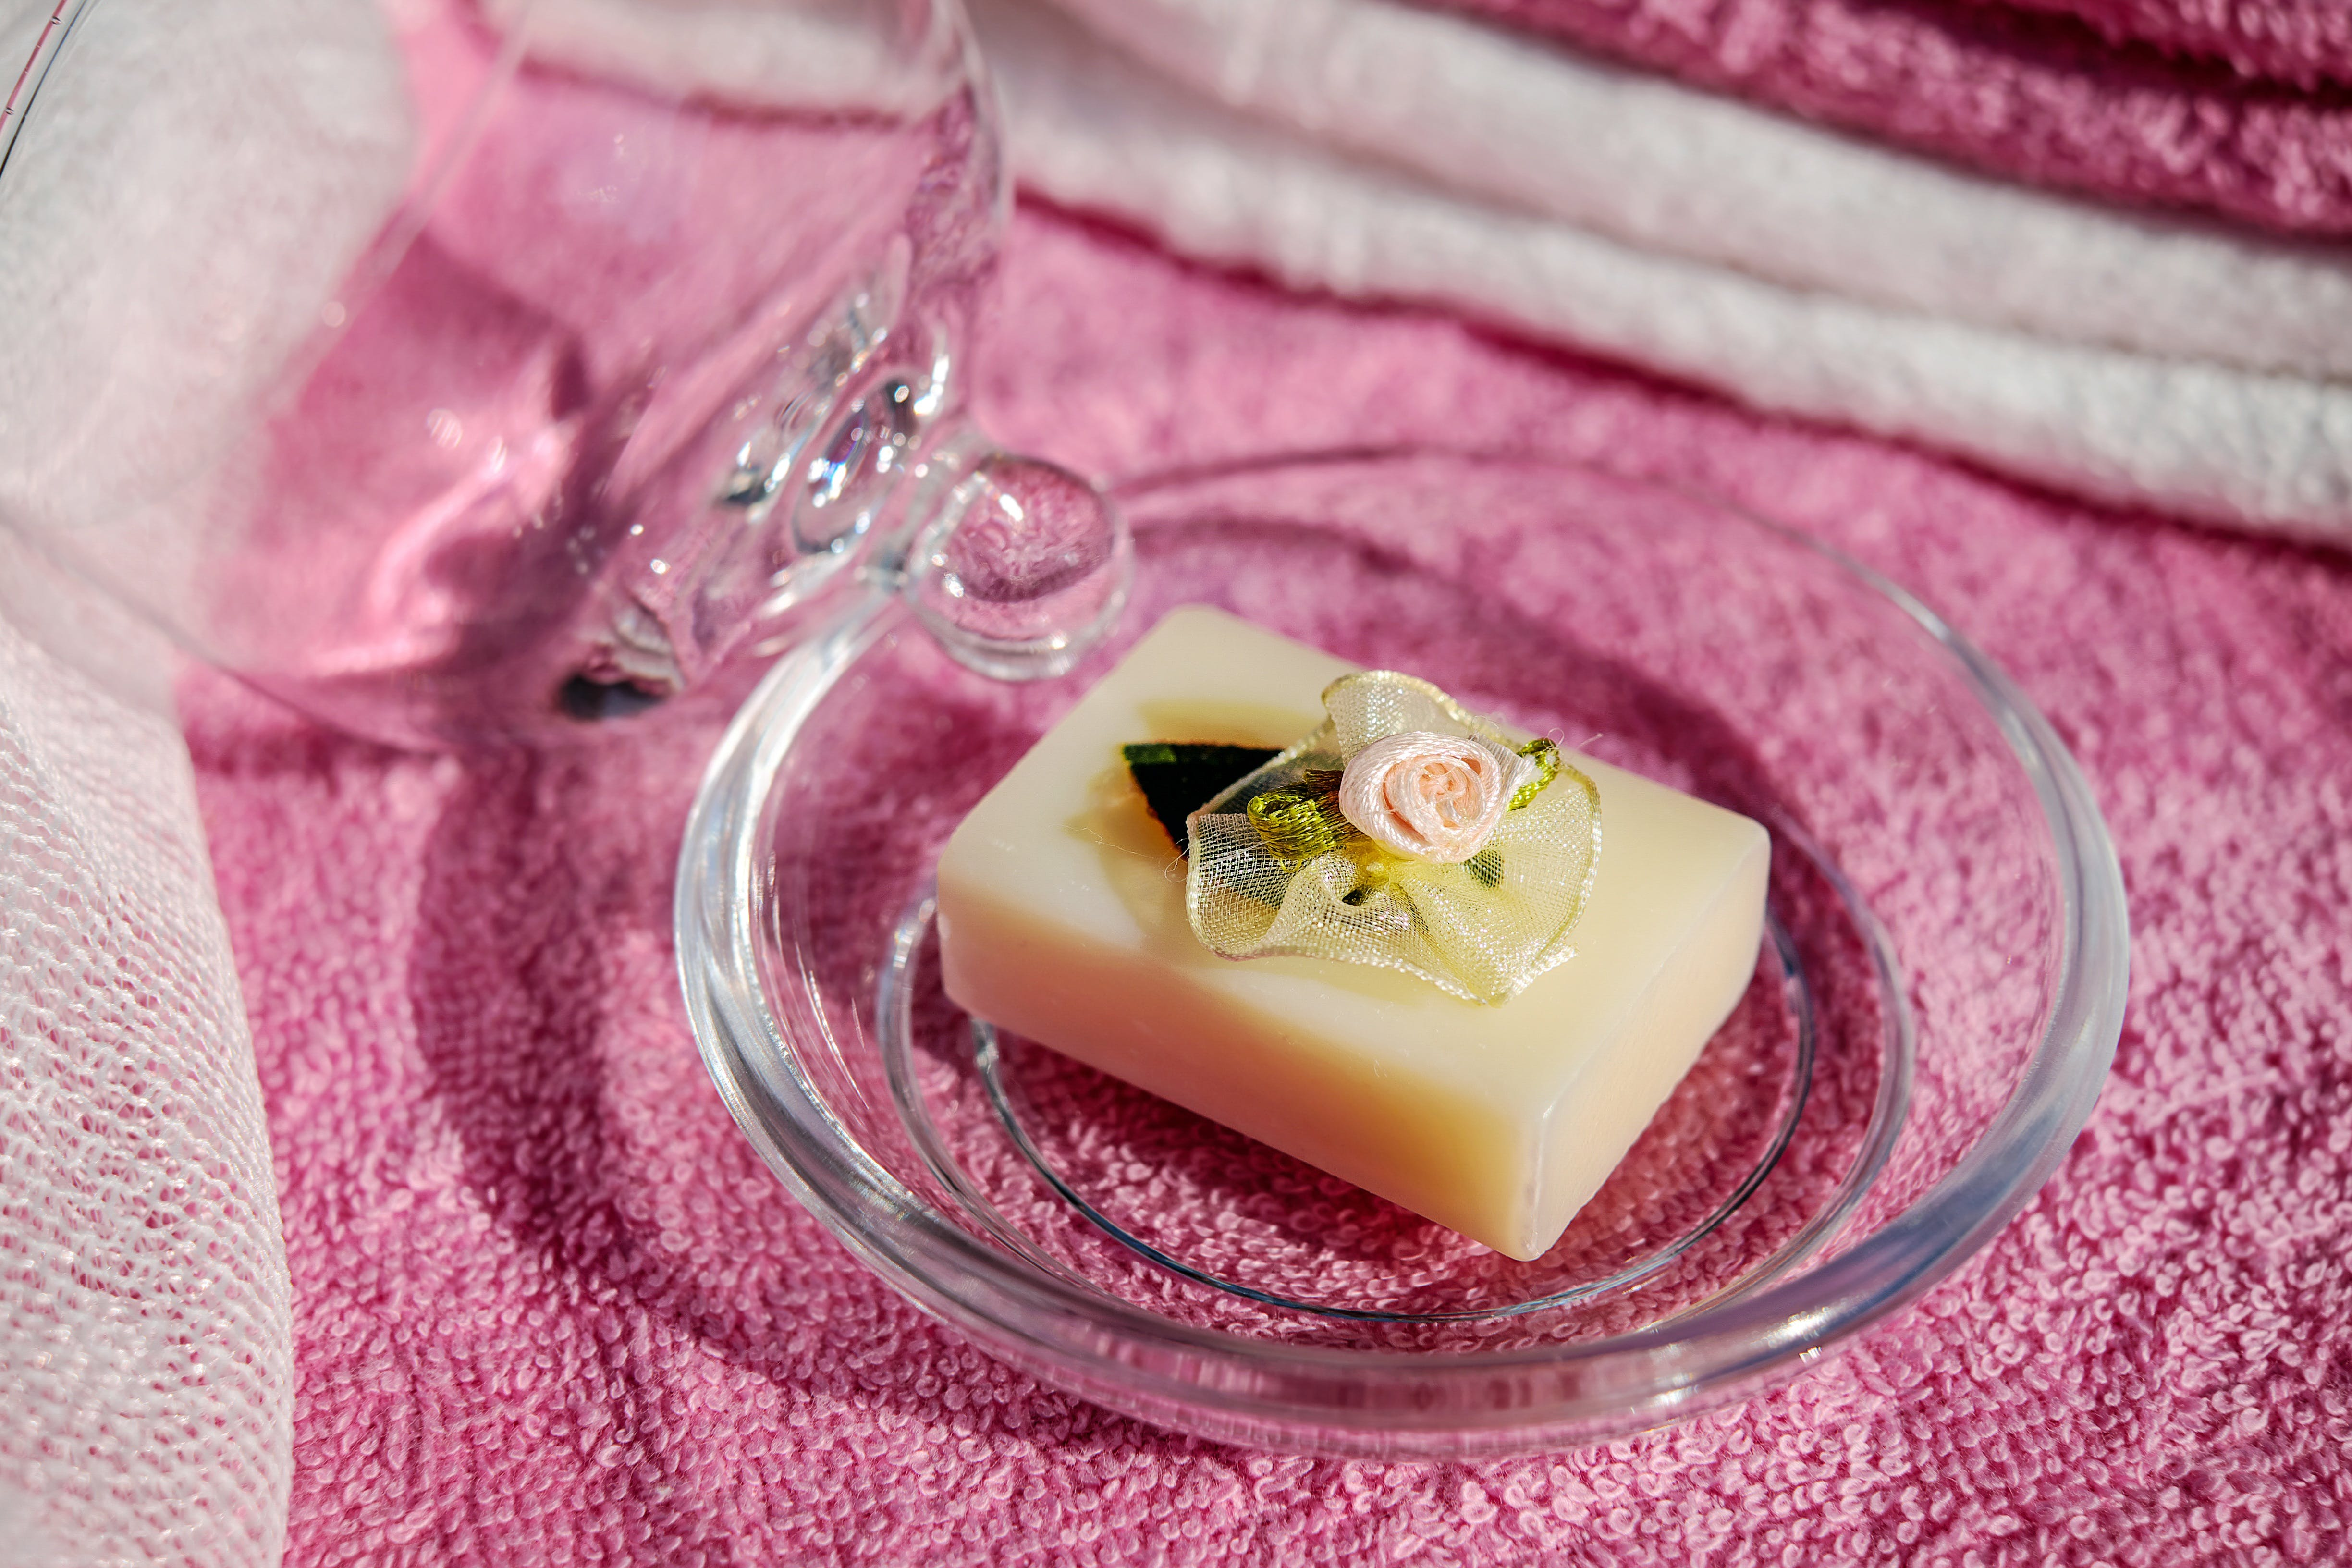 Free stock photo of romantic, glass, soap, health